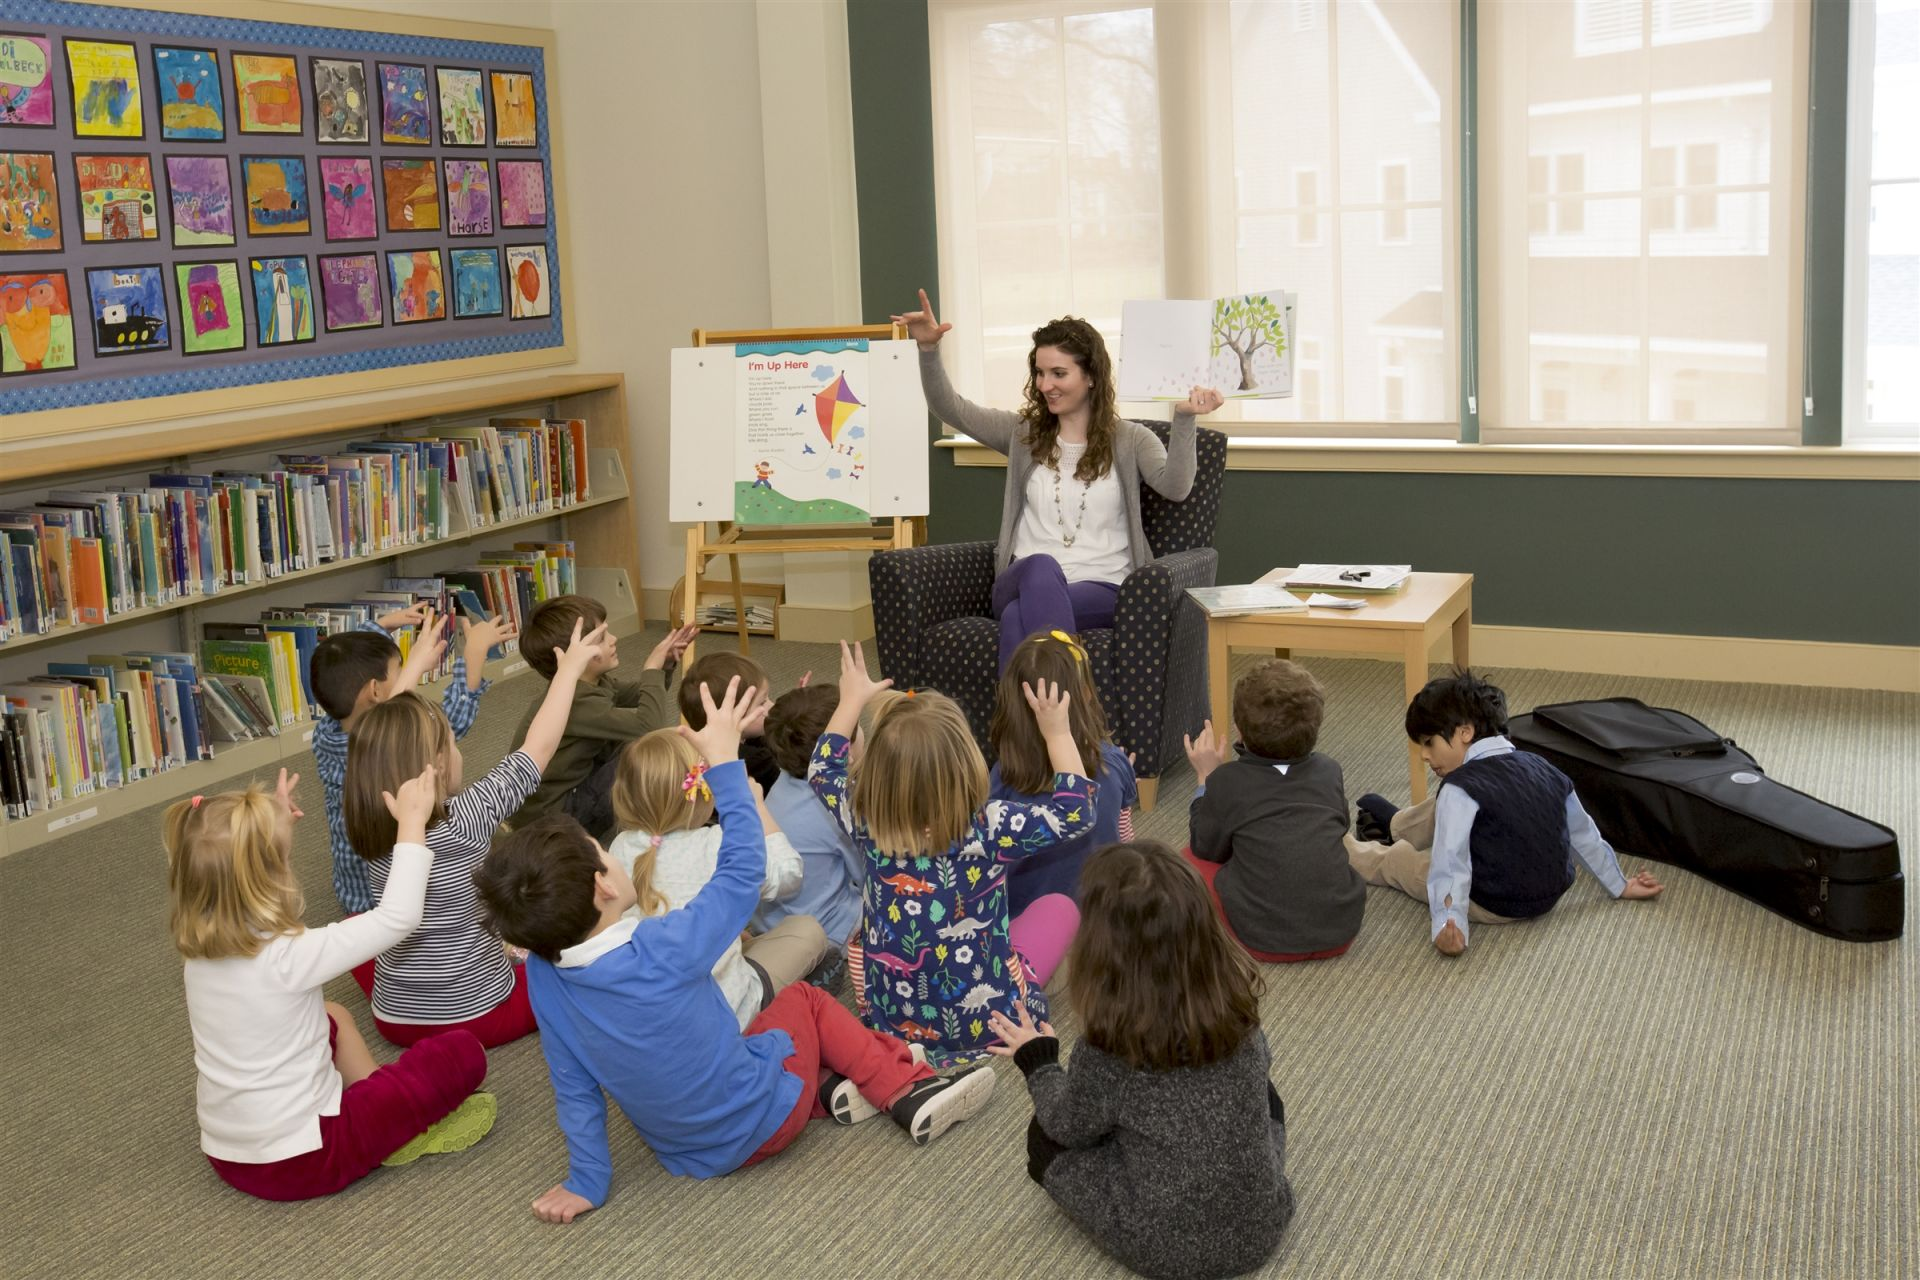 "In Library, students explore different genres of literature, from picture books and fairy tales to nonfiction and ""chapter books."" Beginning in Kindergarten, students learn library basics, including identifying a book's author and locating a book on the library shelves. Students explore personal interests and develop a sense of who they are as readers and as they browse and select books to check out."